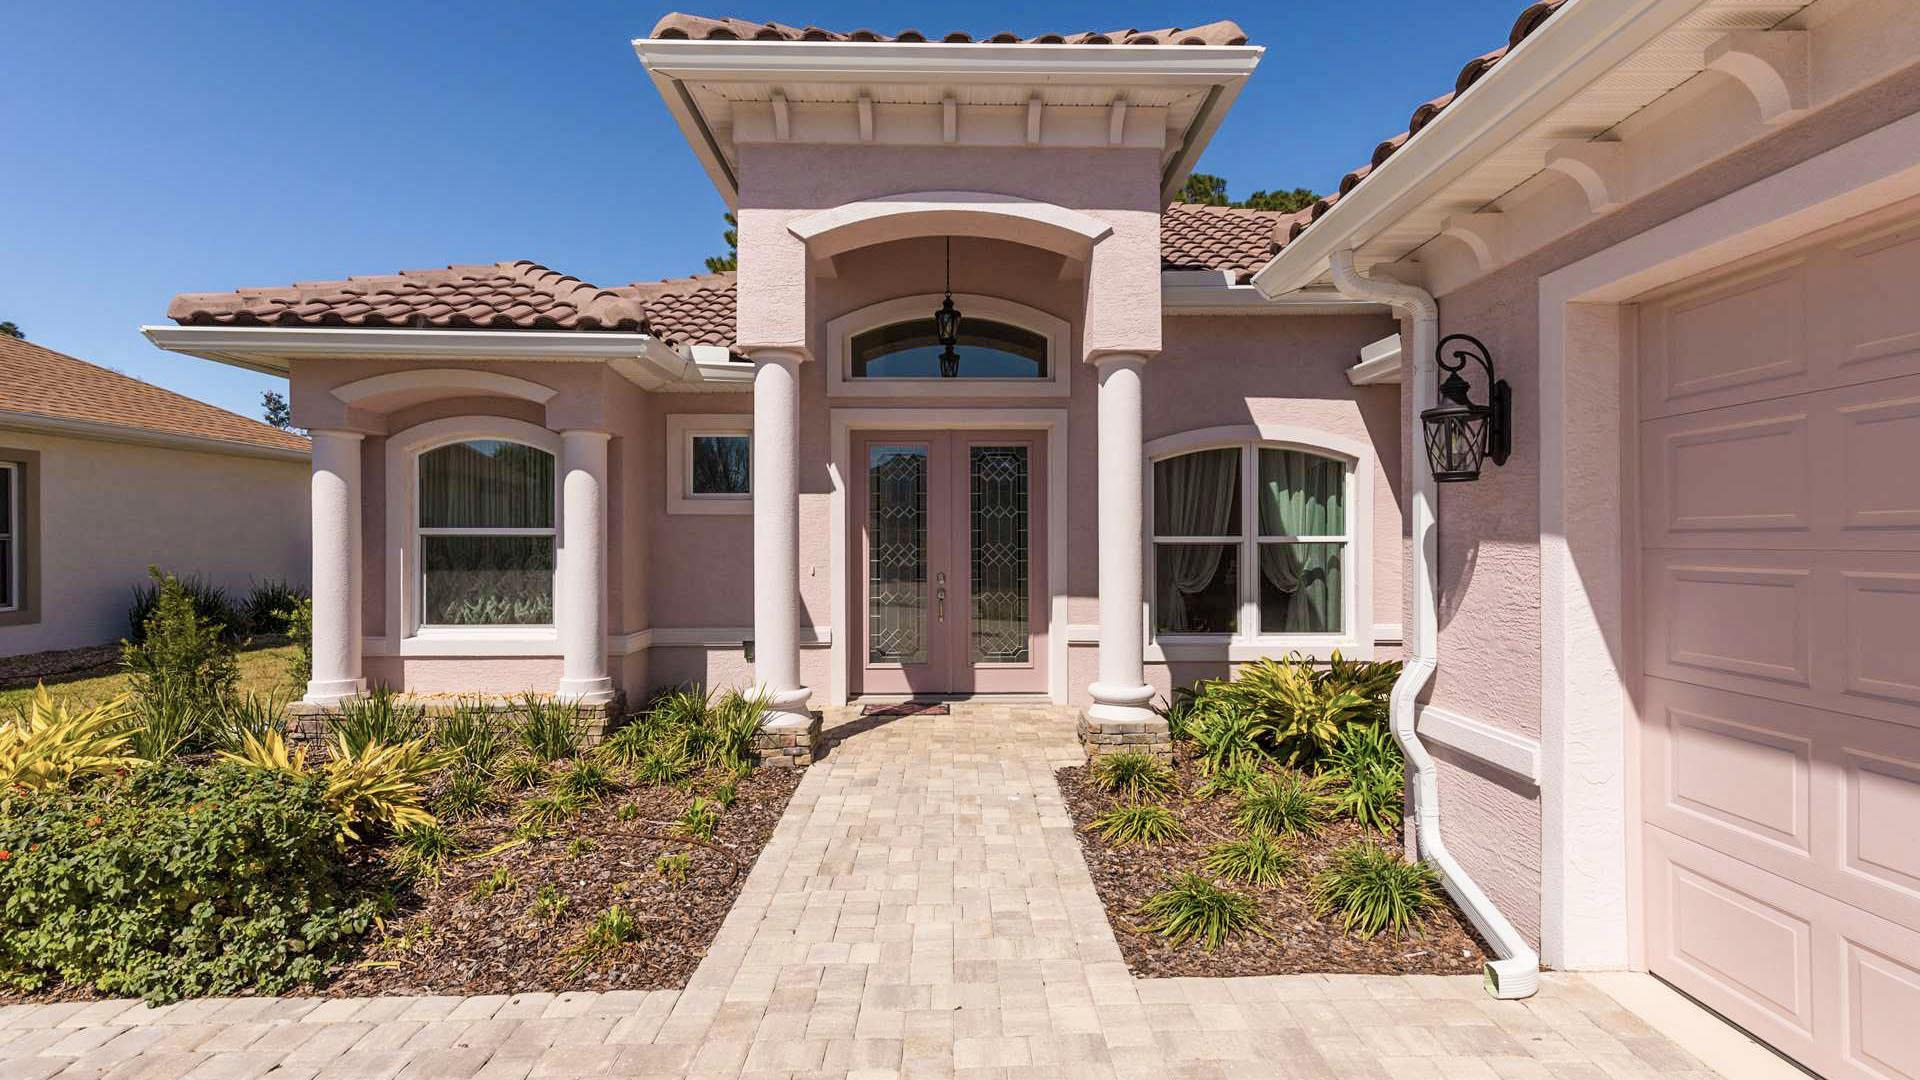 Exterior featured in the MARIA. Certified Green home By Florida Green Construction